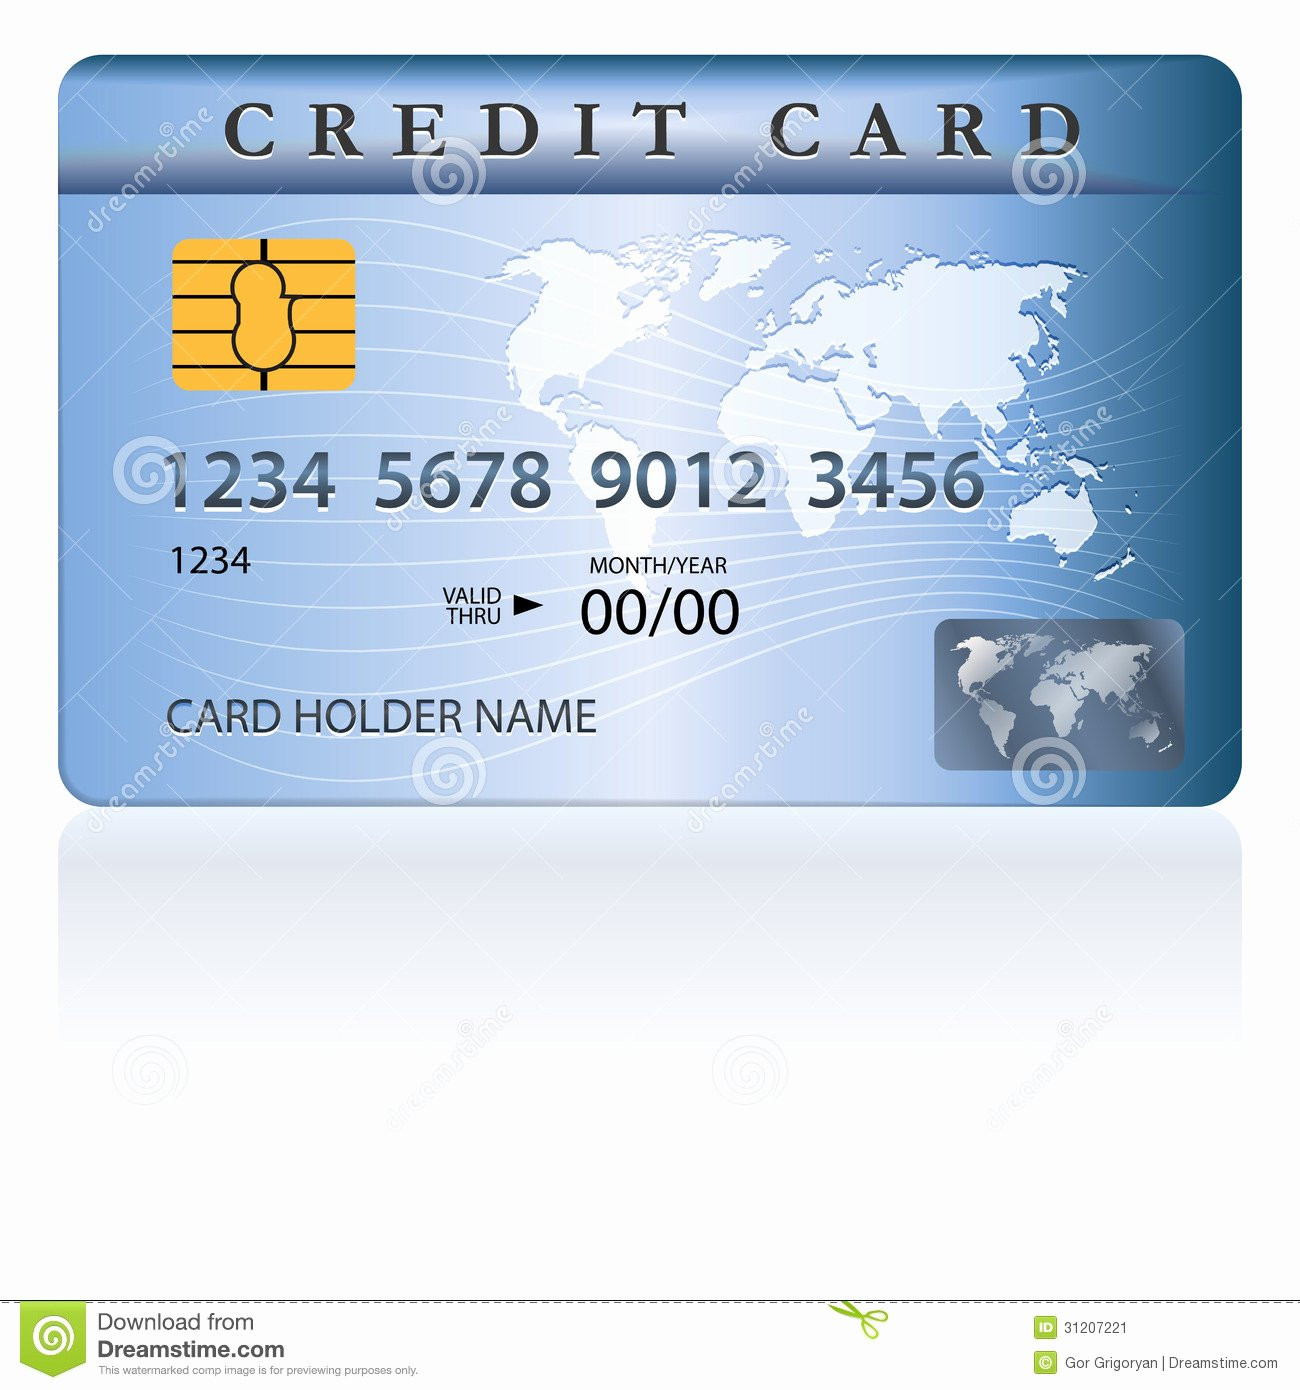 Credit Card Design Template Lovely Credit Debit Card Design Stock Vector Illustration Of